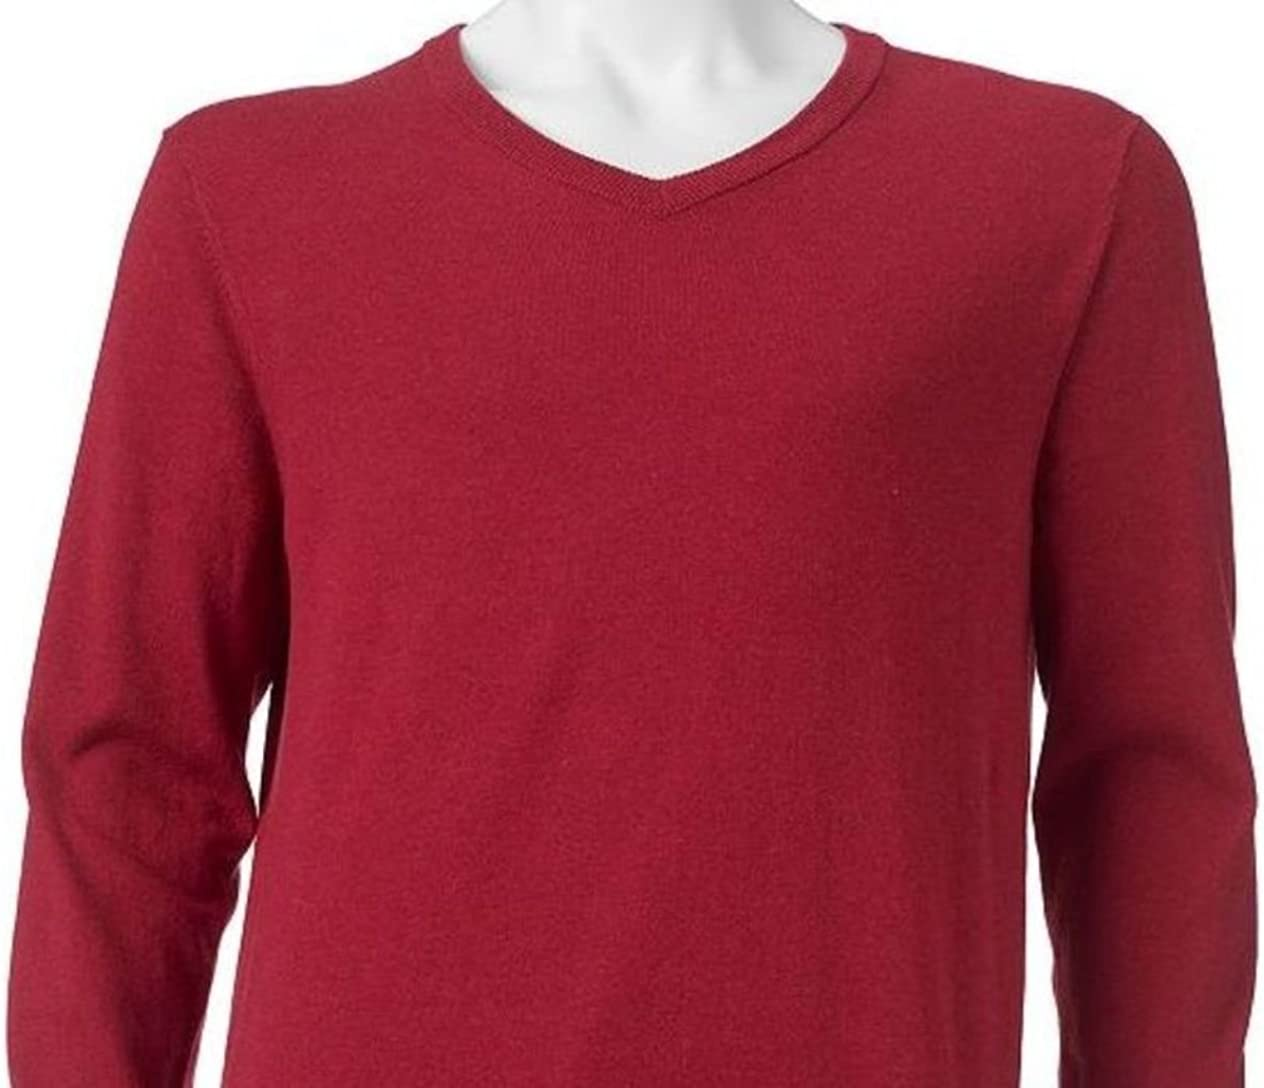 Sonoma Mens Classic-Fit Lightweight V-Neck Cotton Sweater Cherry Heather